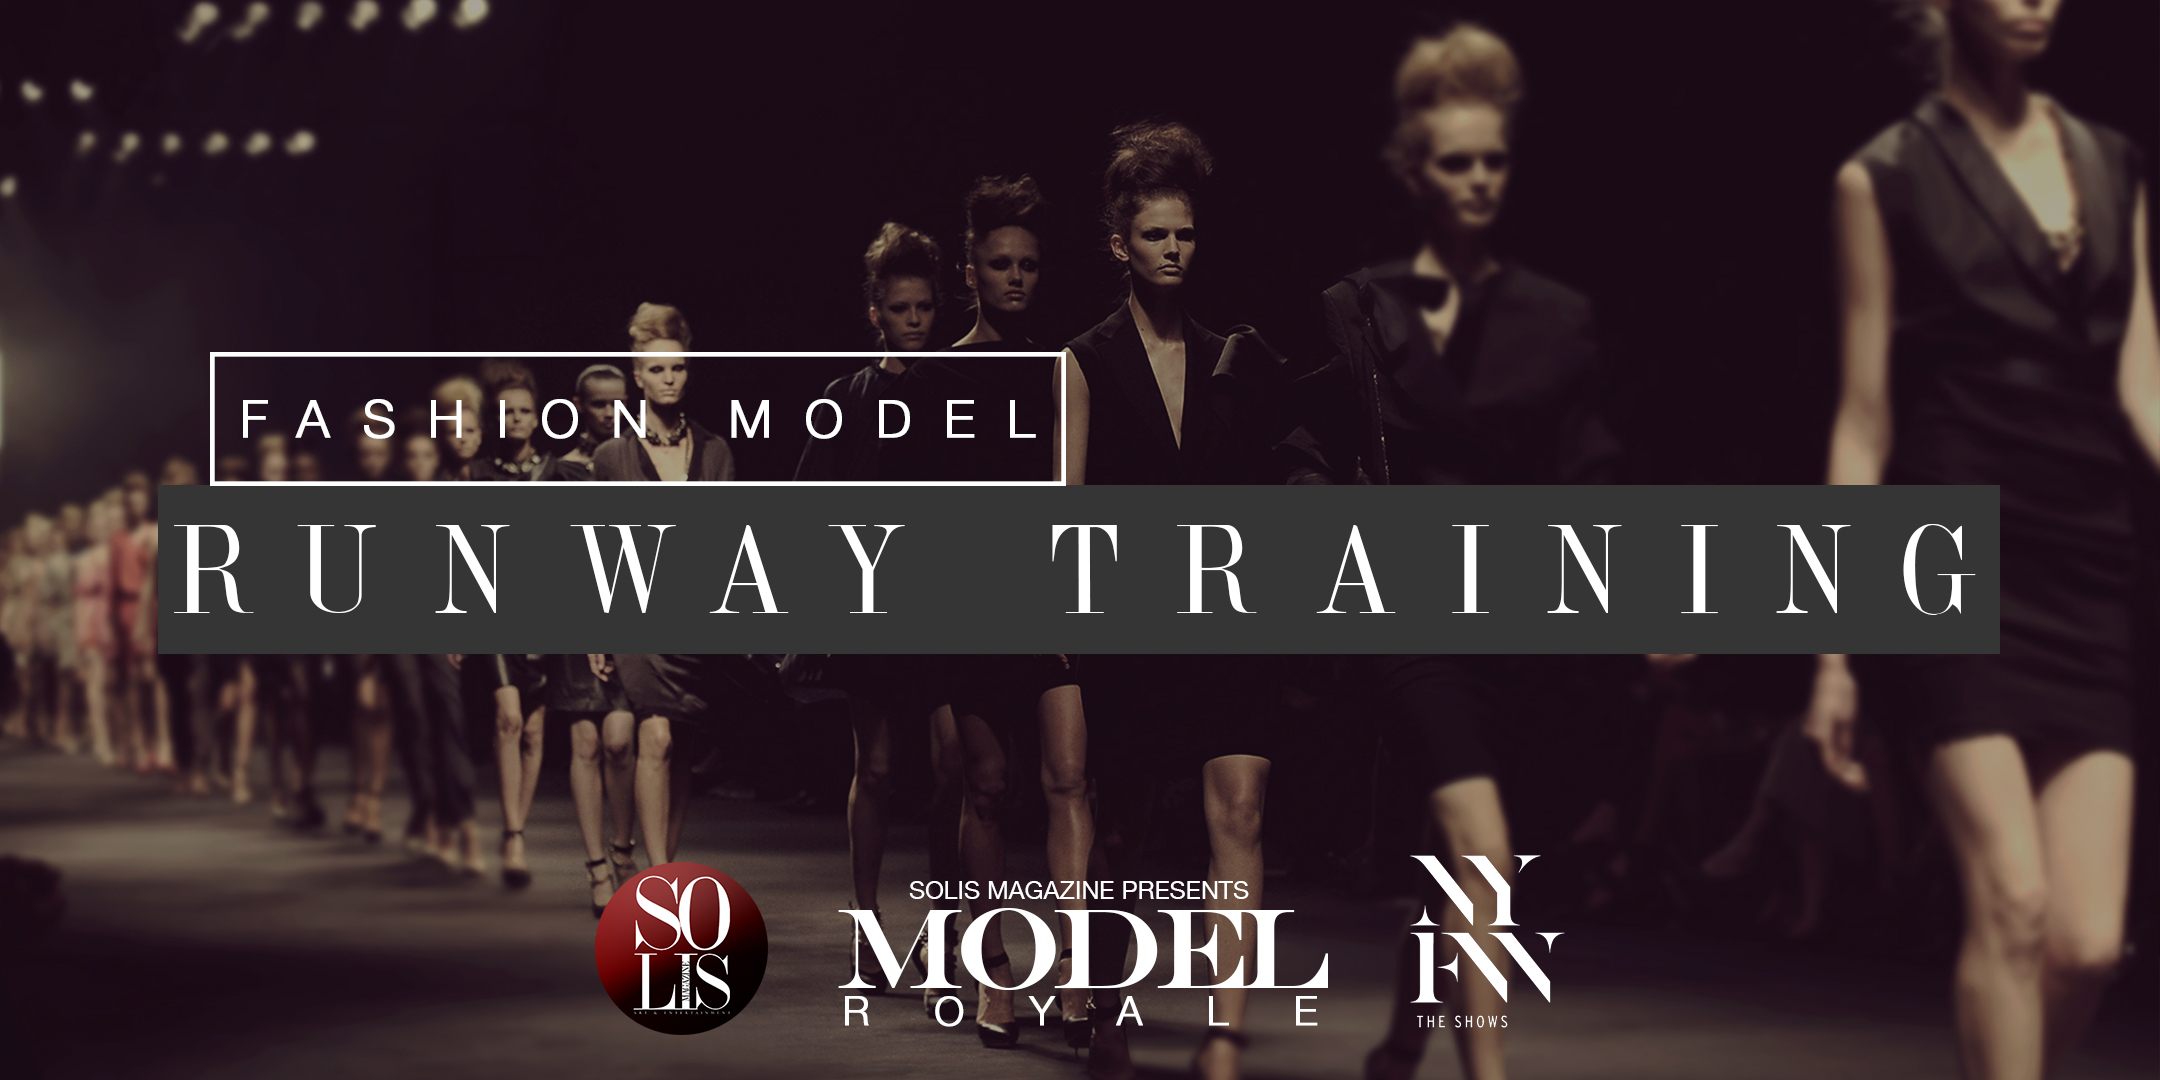 Model Royale - Professional Fashion Model Training